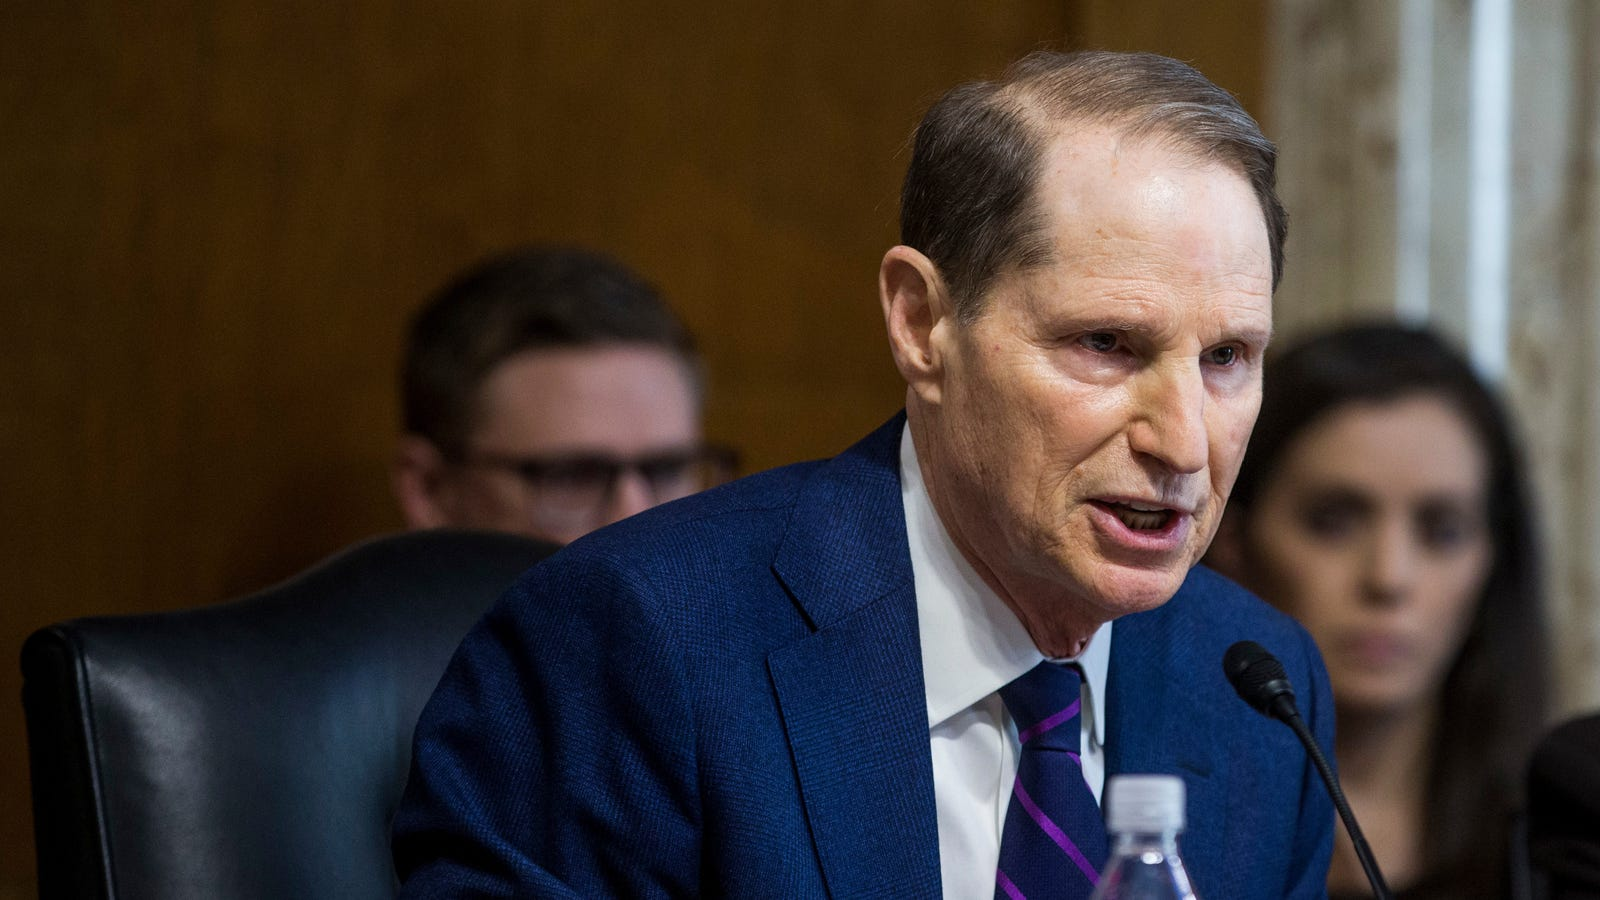 Senator Wyden Warns Facebook's Targeted Ads a 'Sophisticated' Threat to U.S. Elections